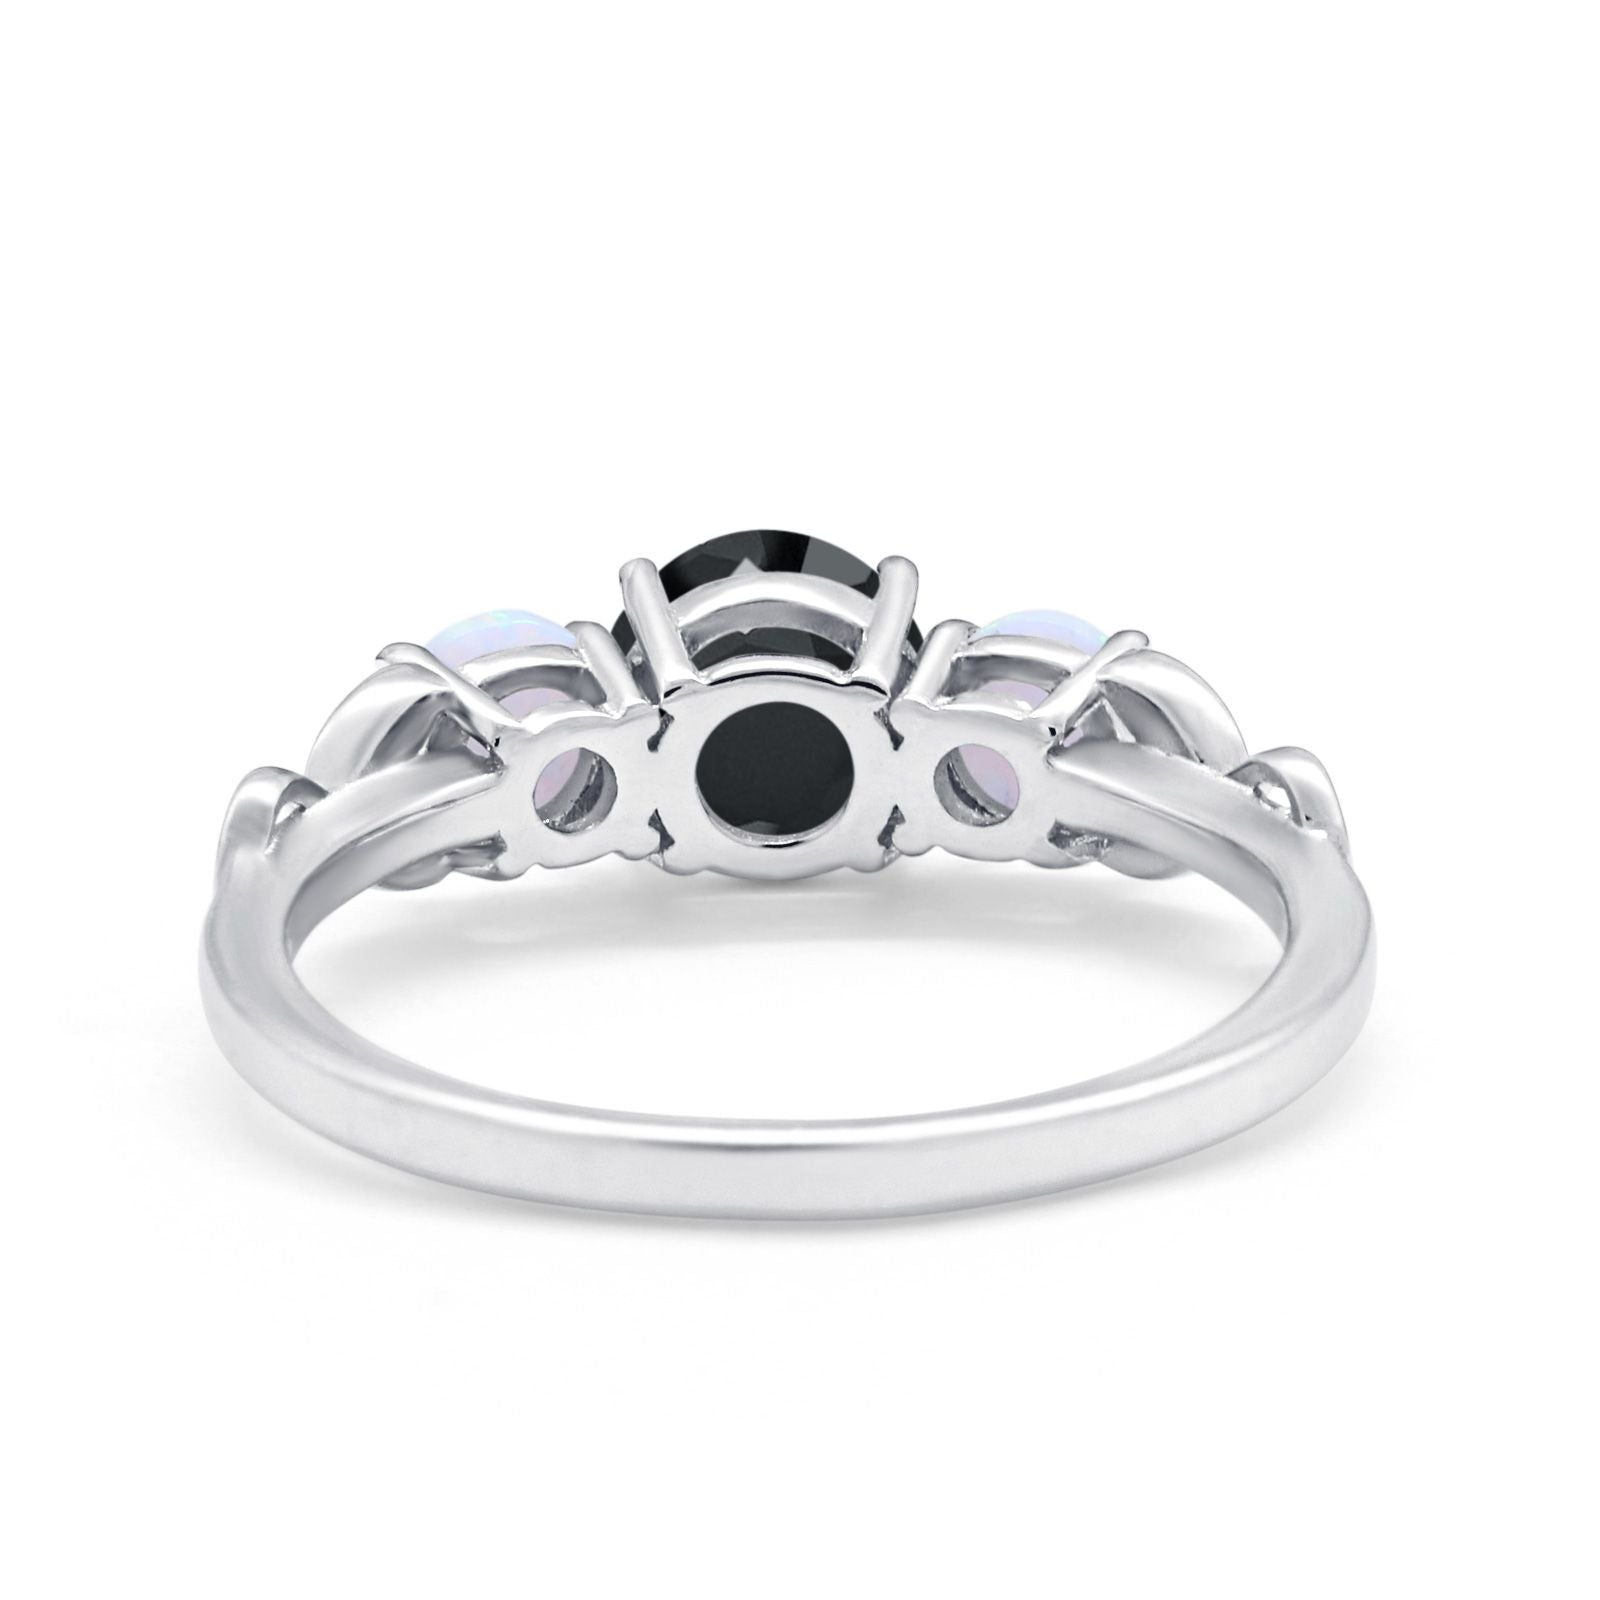 Art Deco Three Stone Engagement Ring Simulated Cubic Zirconia 925 Sterling Silver